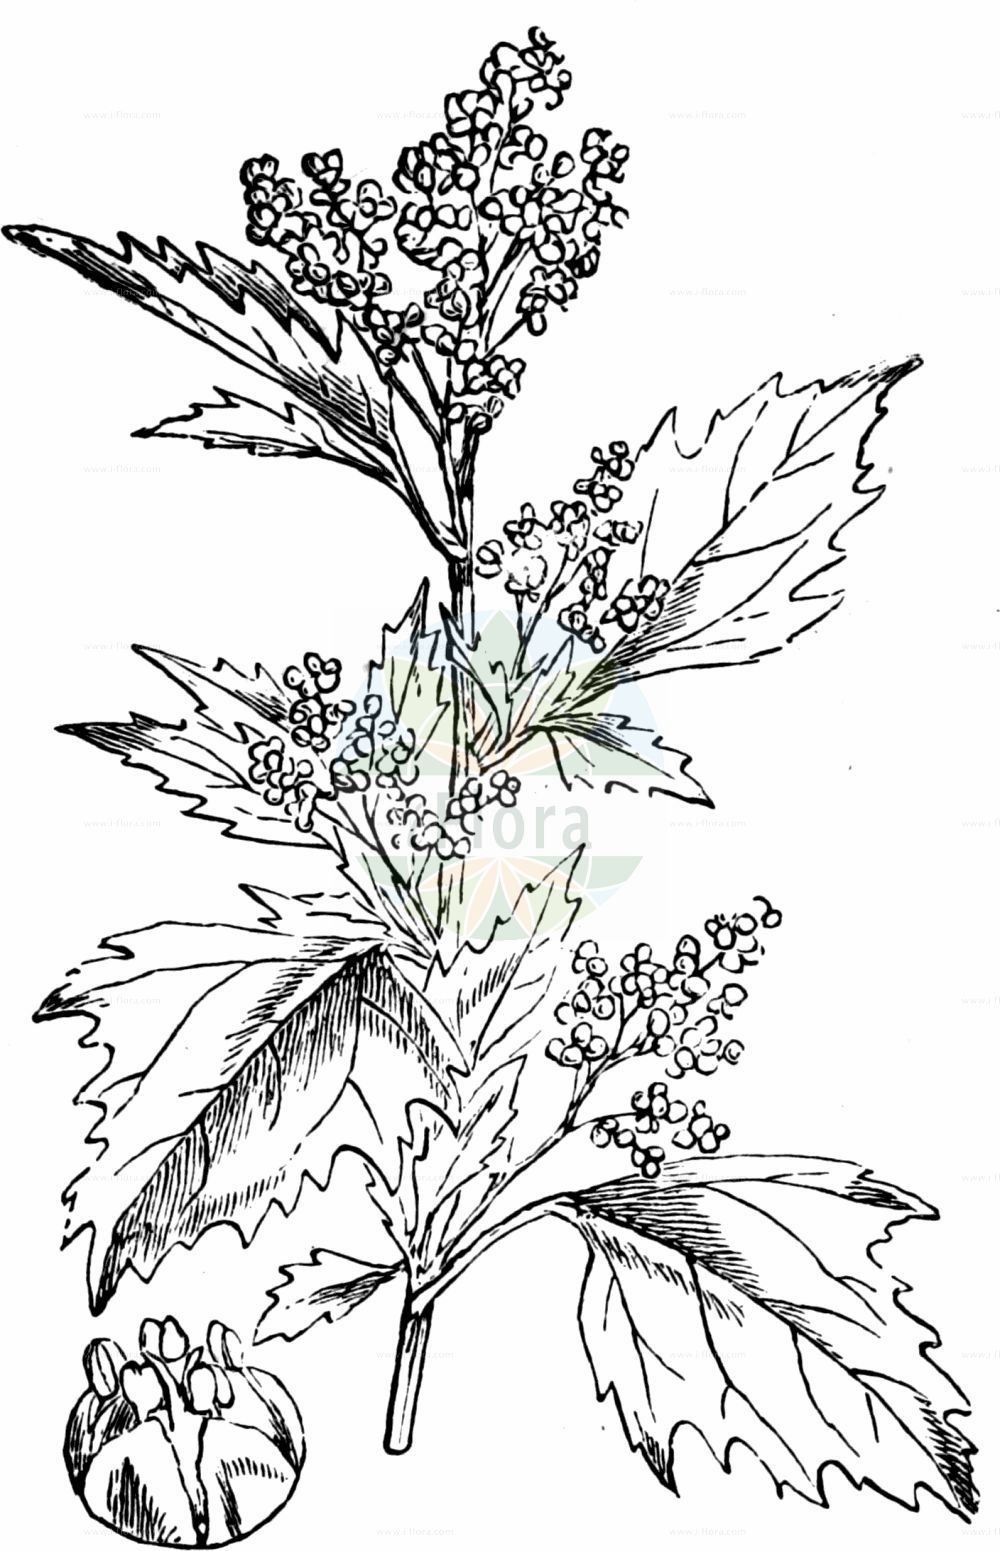 Historische Abbildung von Chenopodiastrum murale (Mauer-Gaensefuss - Nettle-leaved Goosefoot). Das Bild zeigt Blatt, Bluete, Frucht und Same. ---- Historical Drawing of Chenopodiastrum murale (Mauer-Gaensefuss - Nettle-leaved Goosefoot).The image is showing leaf, flower, fruit and seed.(Chenopodiastrum murale,Mauer-Gaensefuss,Nettle-leaved Goosefoot,Chenopodiastrum murale,Chenopodium murale,Mauer-Gaensefuss,Nettle-leaved Goosefoot,Nettle-leaf Goosefoot,Nettle-leaved Fat-Hen,Wall Goosefoot,Chenopodiastrum,Amaranthaceae,Fuchsschwanzgewaechse,Pigweed family,Blatt,Bluete,Frucht,Same,leaf,flower,fruit,seed,Fitch et al. (1880))